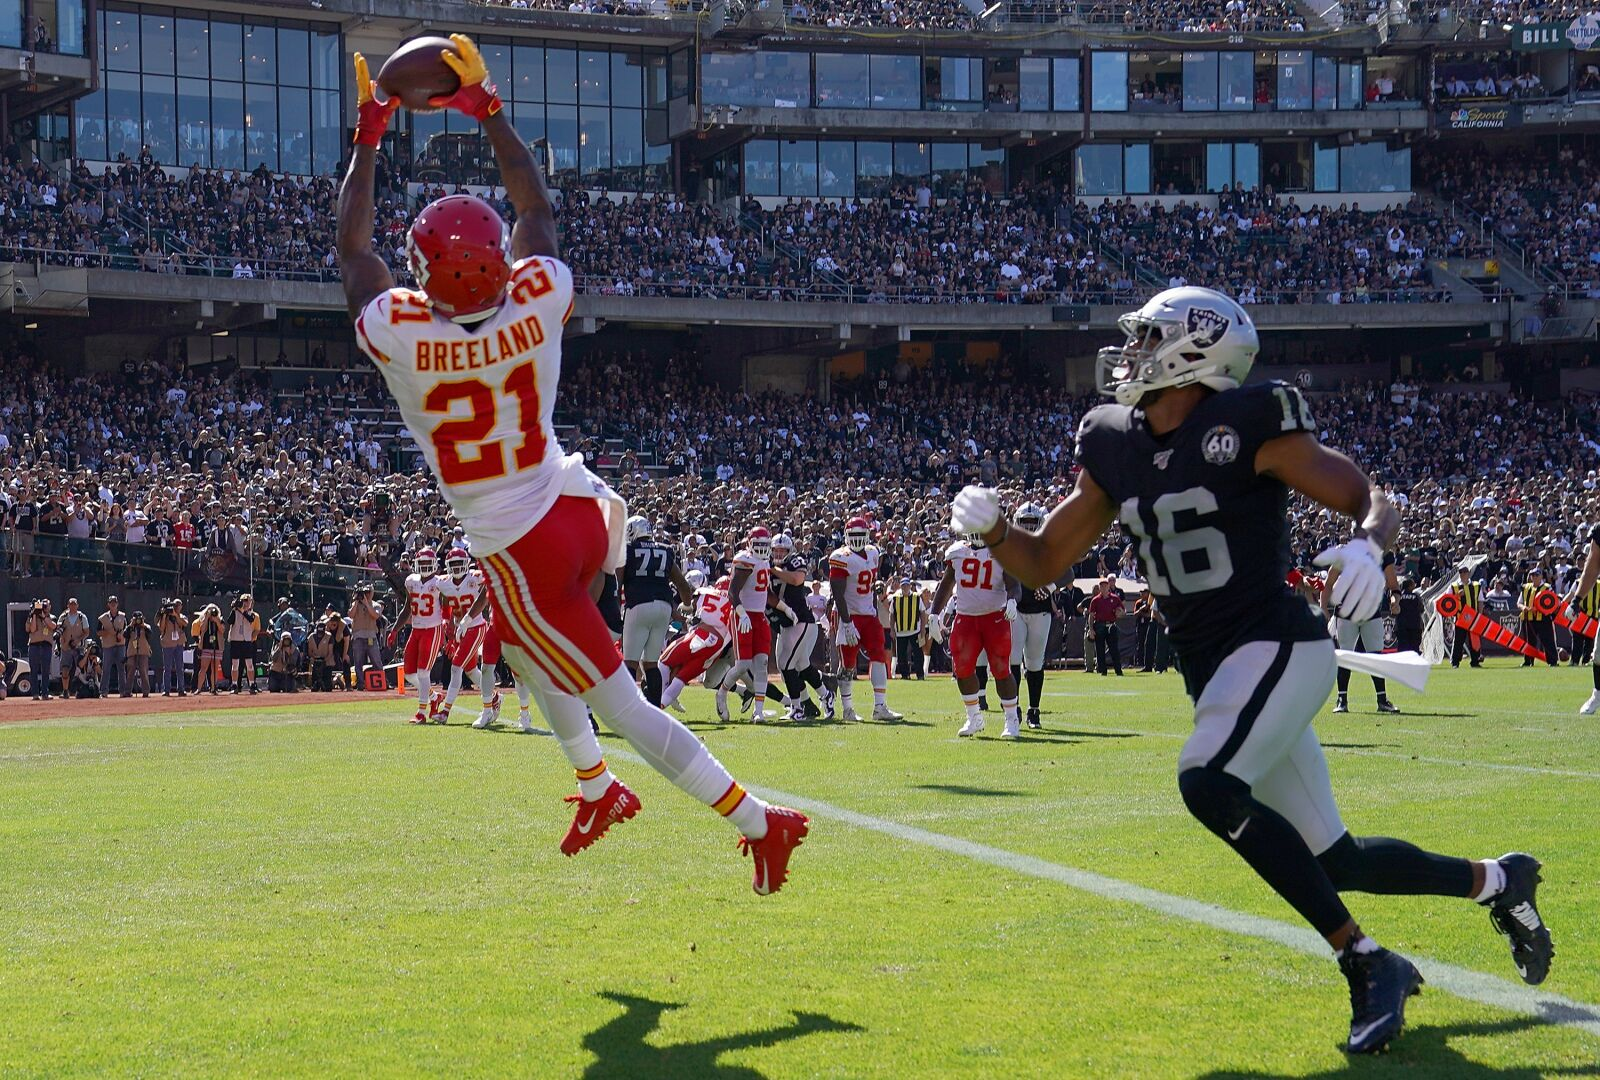 Looking back: Oakland Raiders had chances against Kansas City